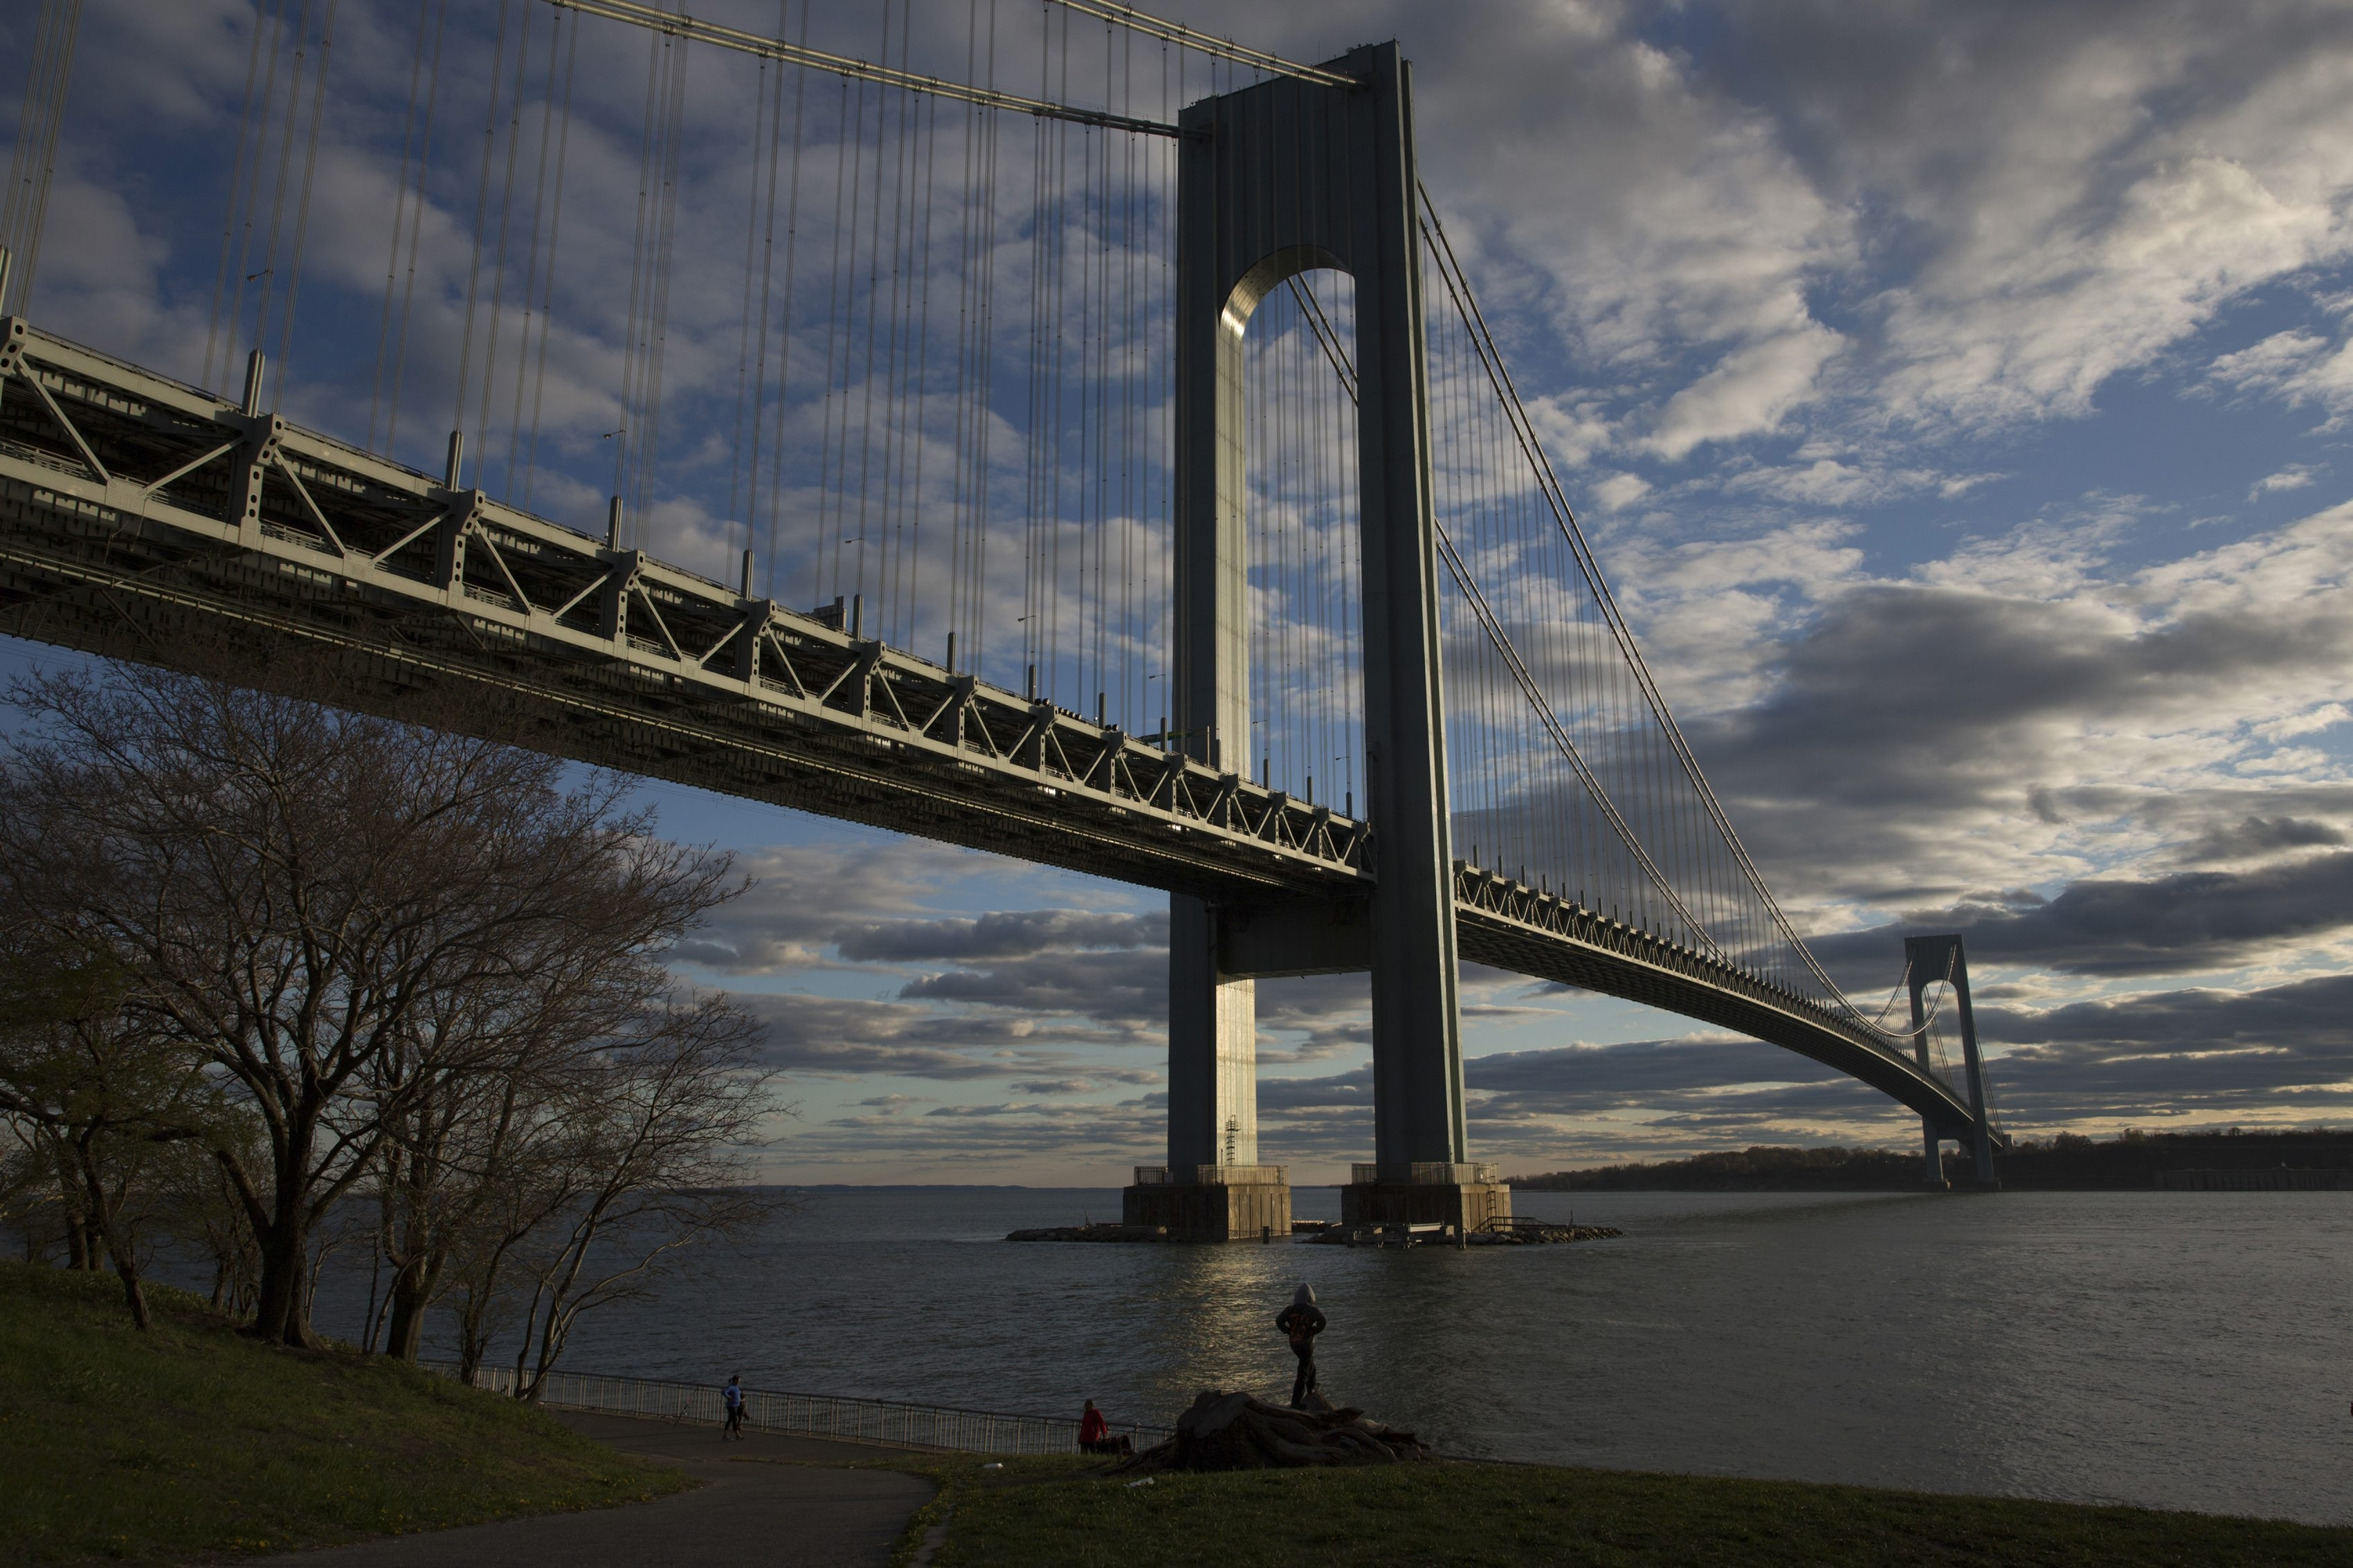 The Verrazano-Narrows Bridge is named for Italian explorer Giovanni da Verrazzano, the first European to enter New York Harbor. His name has been spelled incorrectly since the bridge opened in 1964.